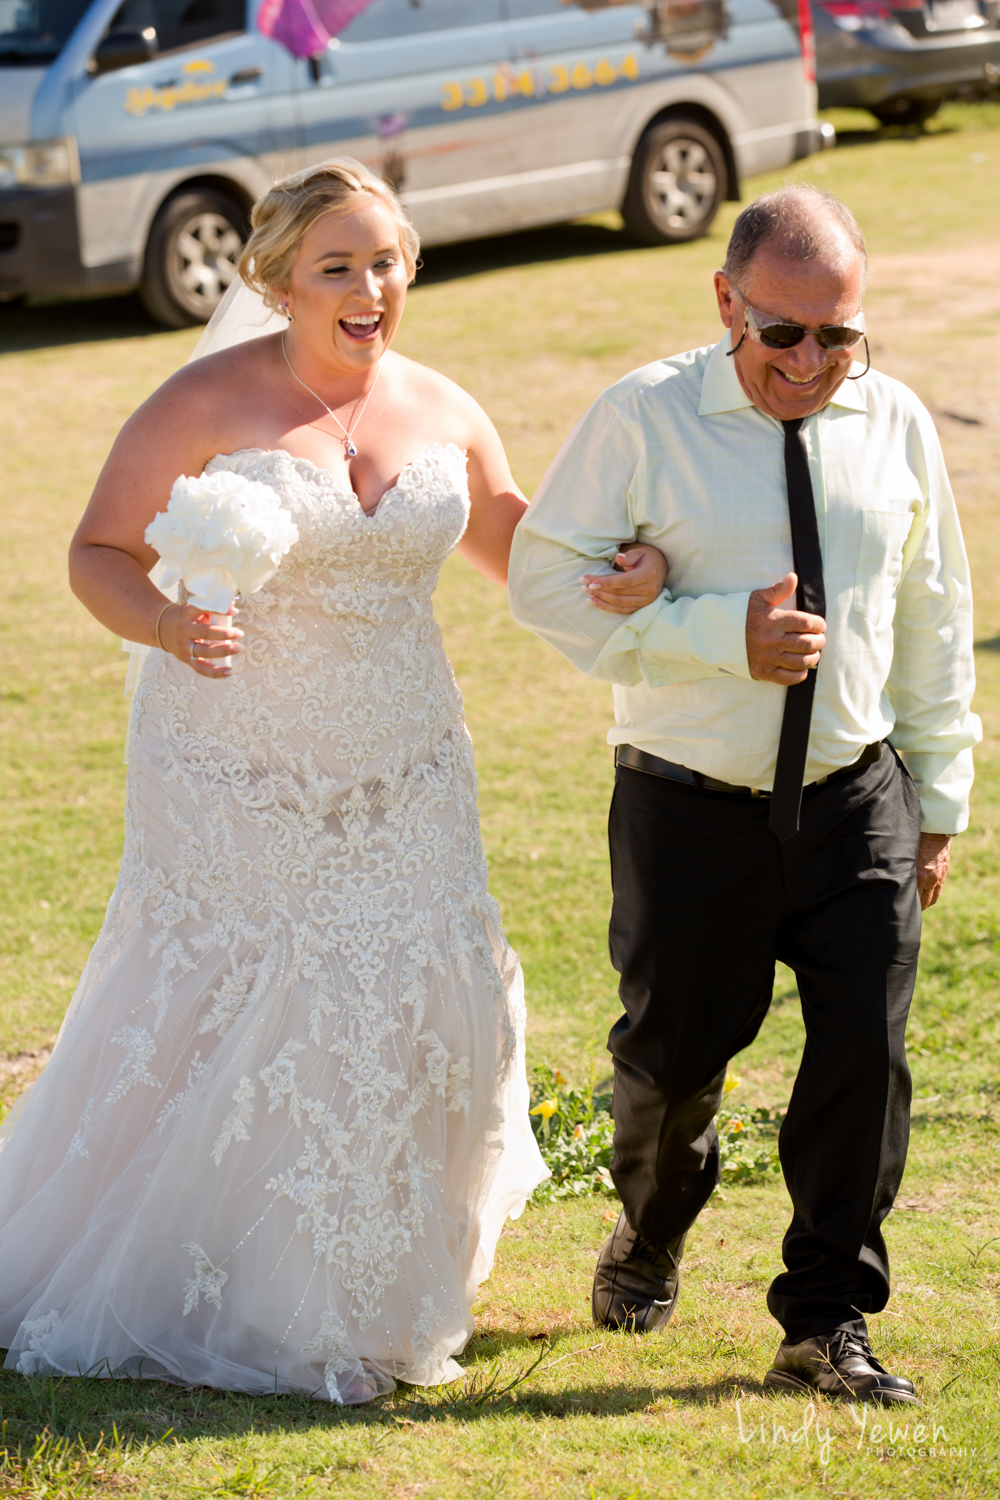 Bribie-Island-wedding-photographer-Chloe-Adam 206.jpg